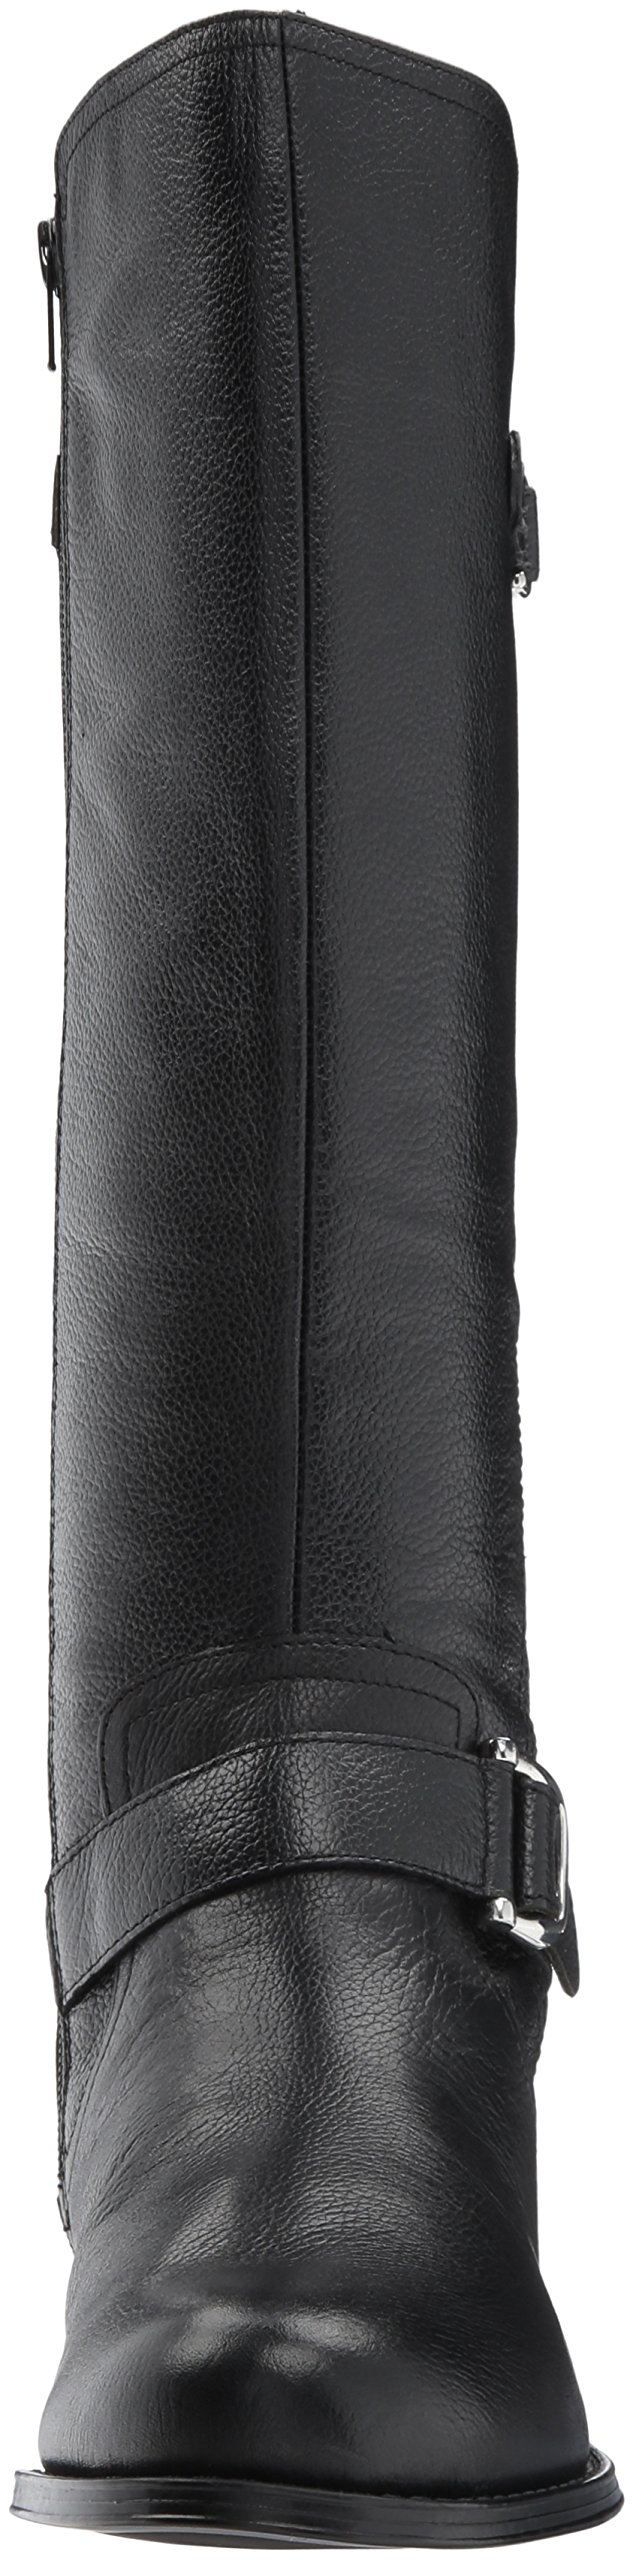 Naturalizer Women's Jenelle Wc Riding Boot, Black, 7.5 M US by Naturalizer (Image #4)